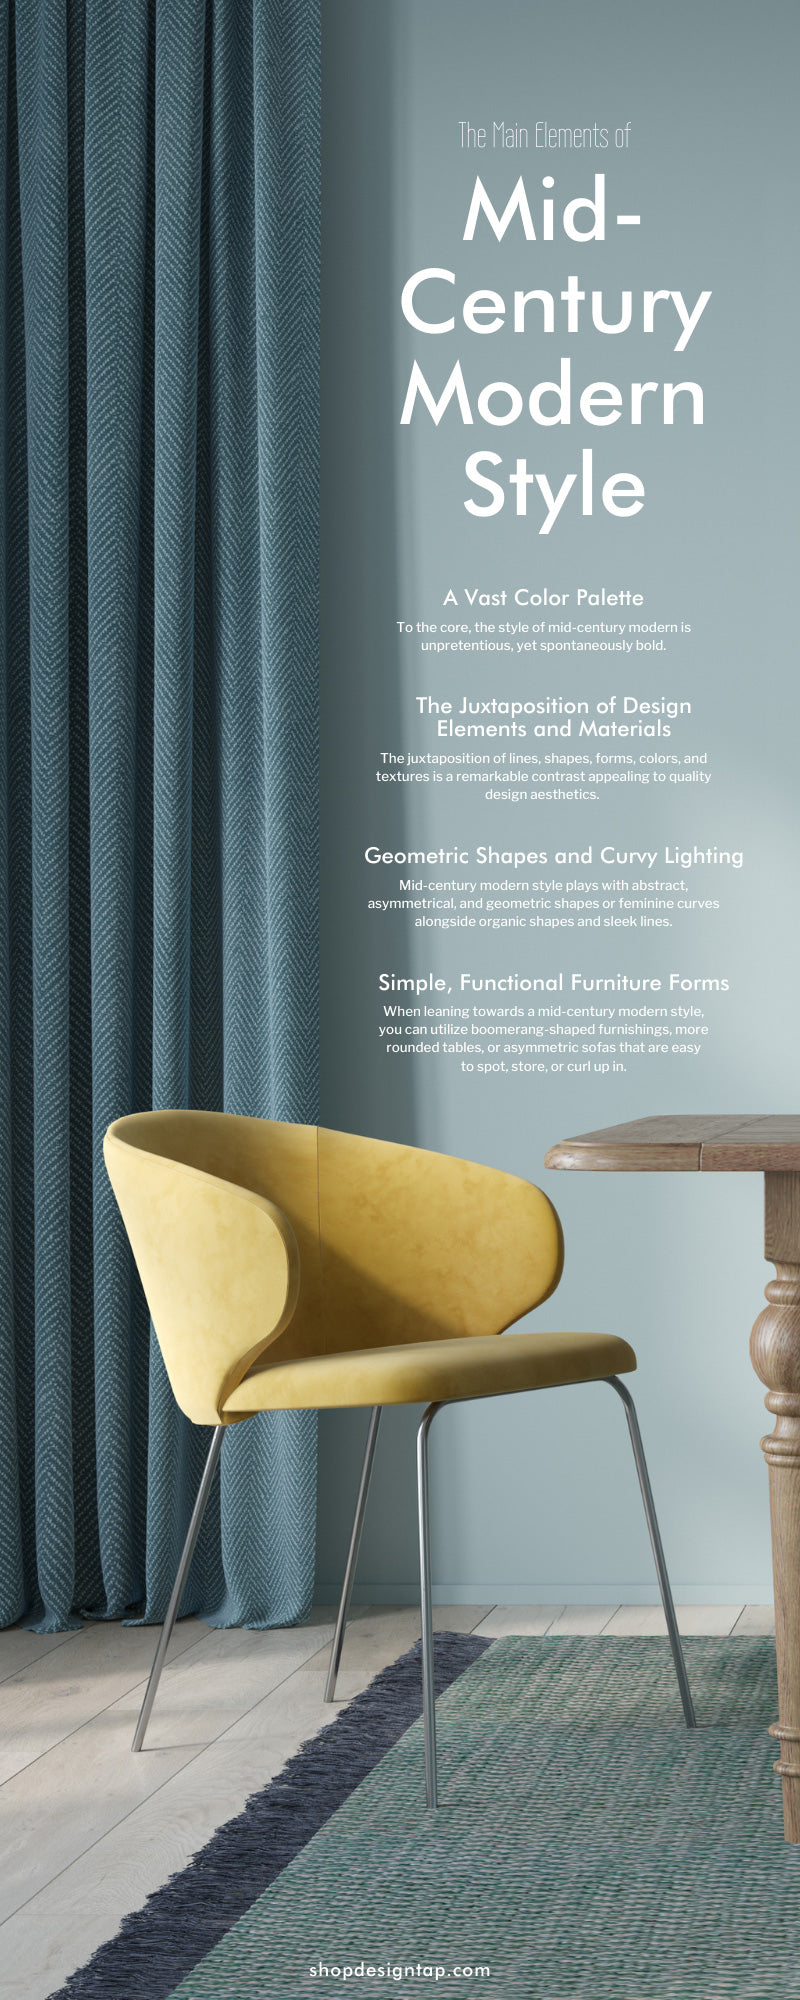 The Main Elements of Mid-Century Modern Style